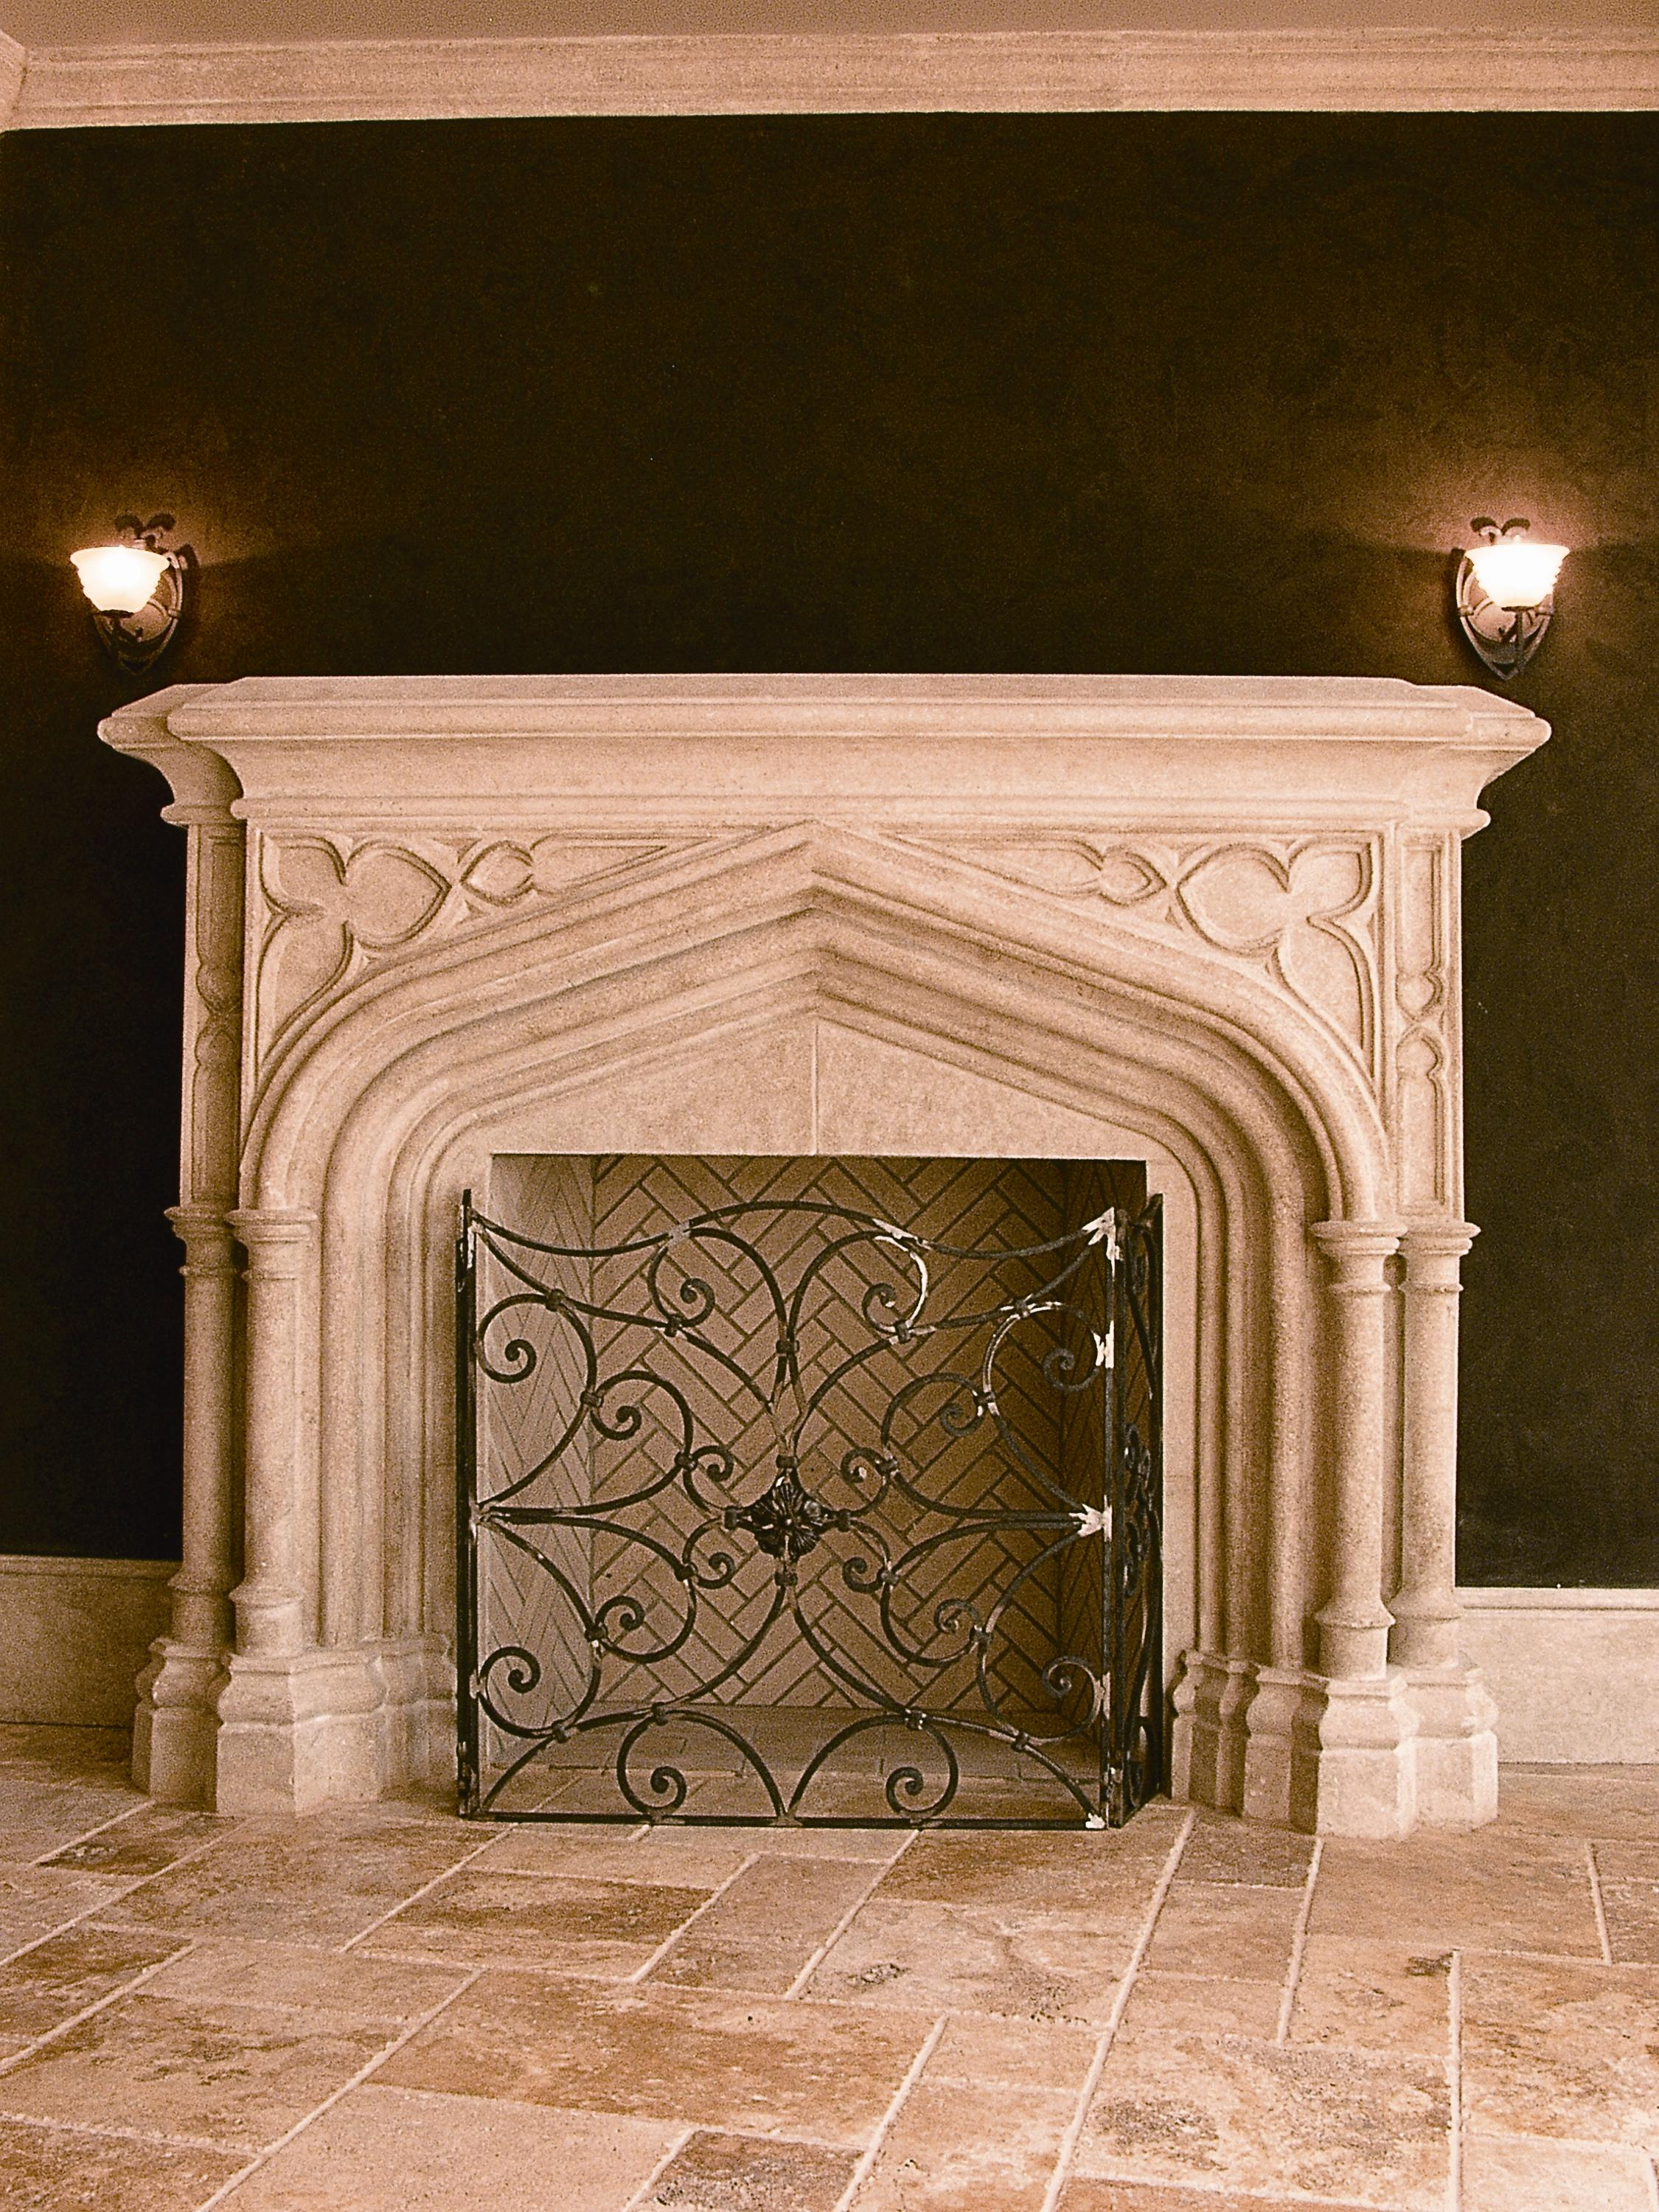 Stone Age Designs Recreates Old World European Fireplace Mantels And Stone Ki